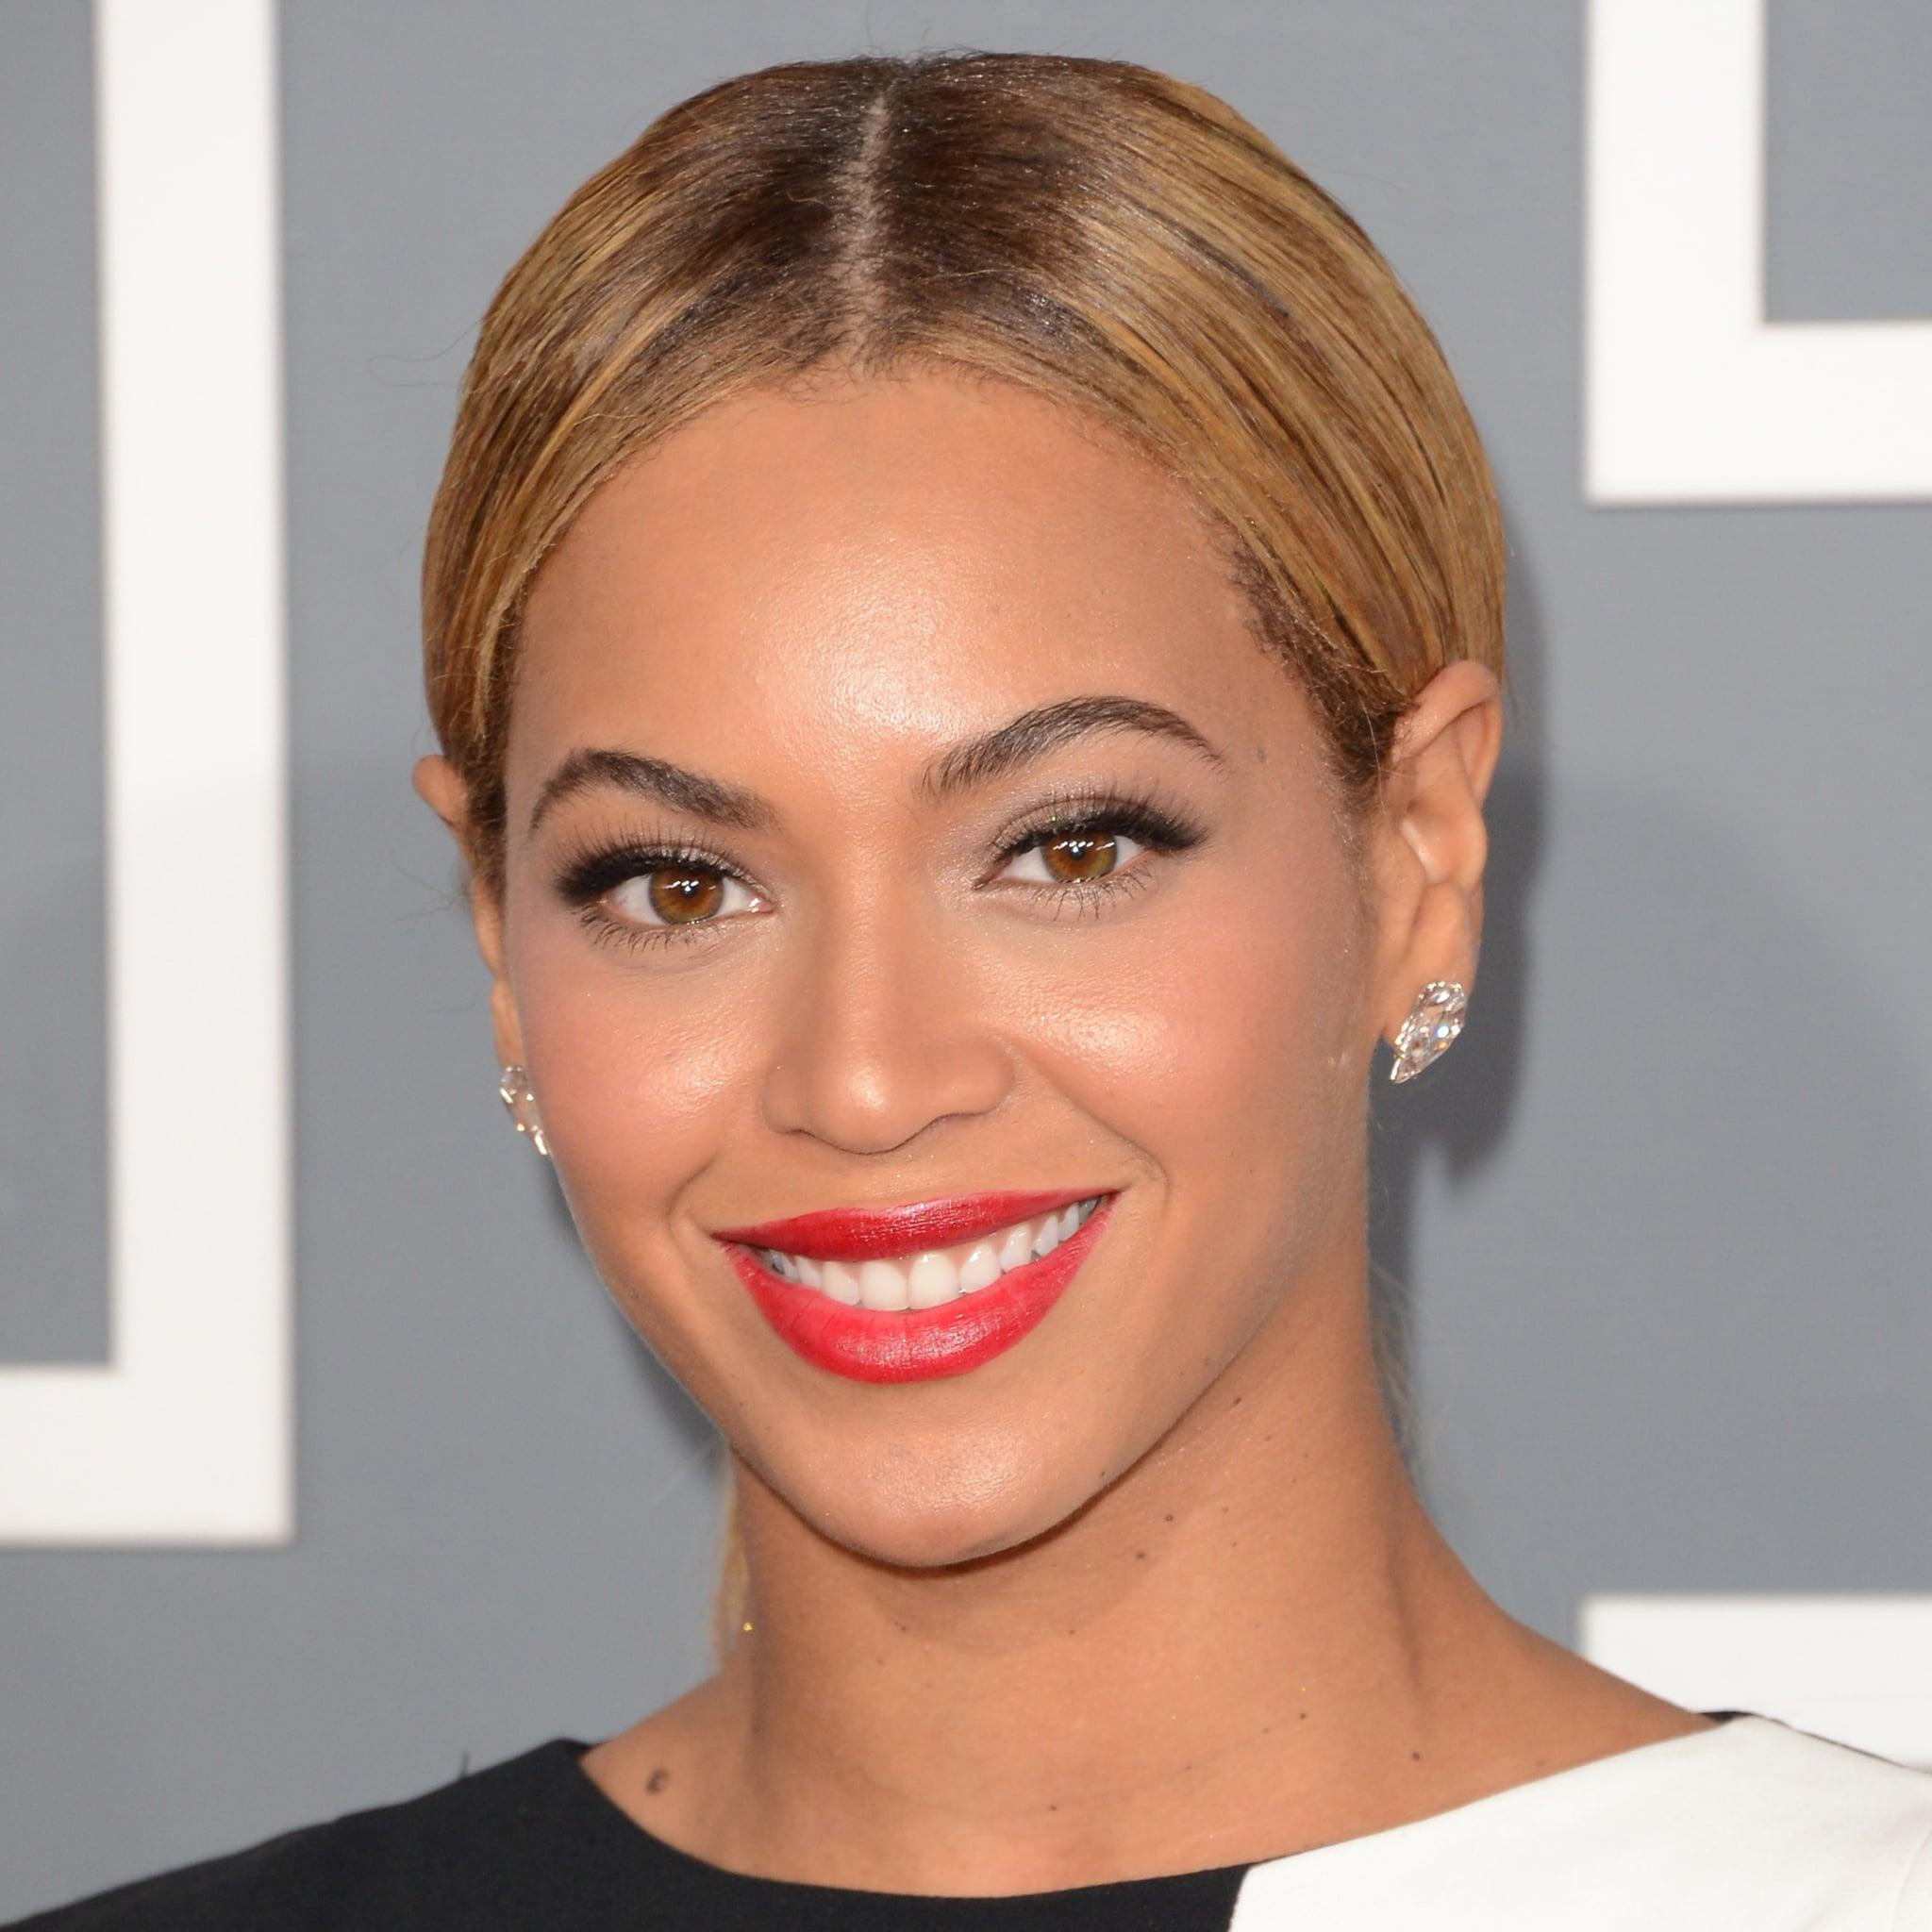 Beyoncé Opens Up About Why She Almost Quit Music